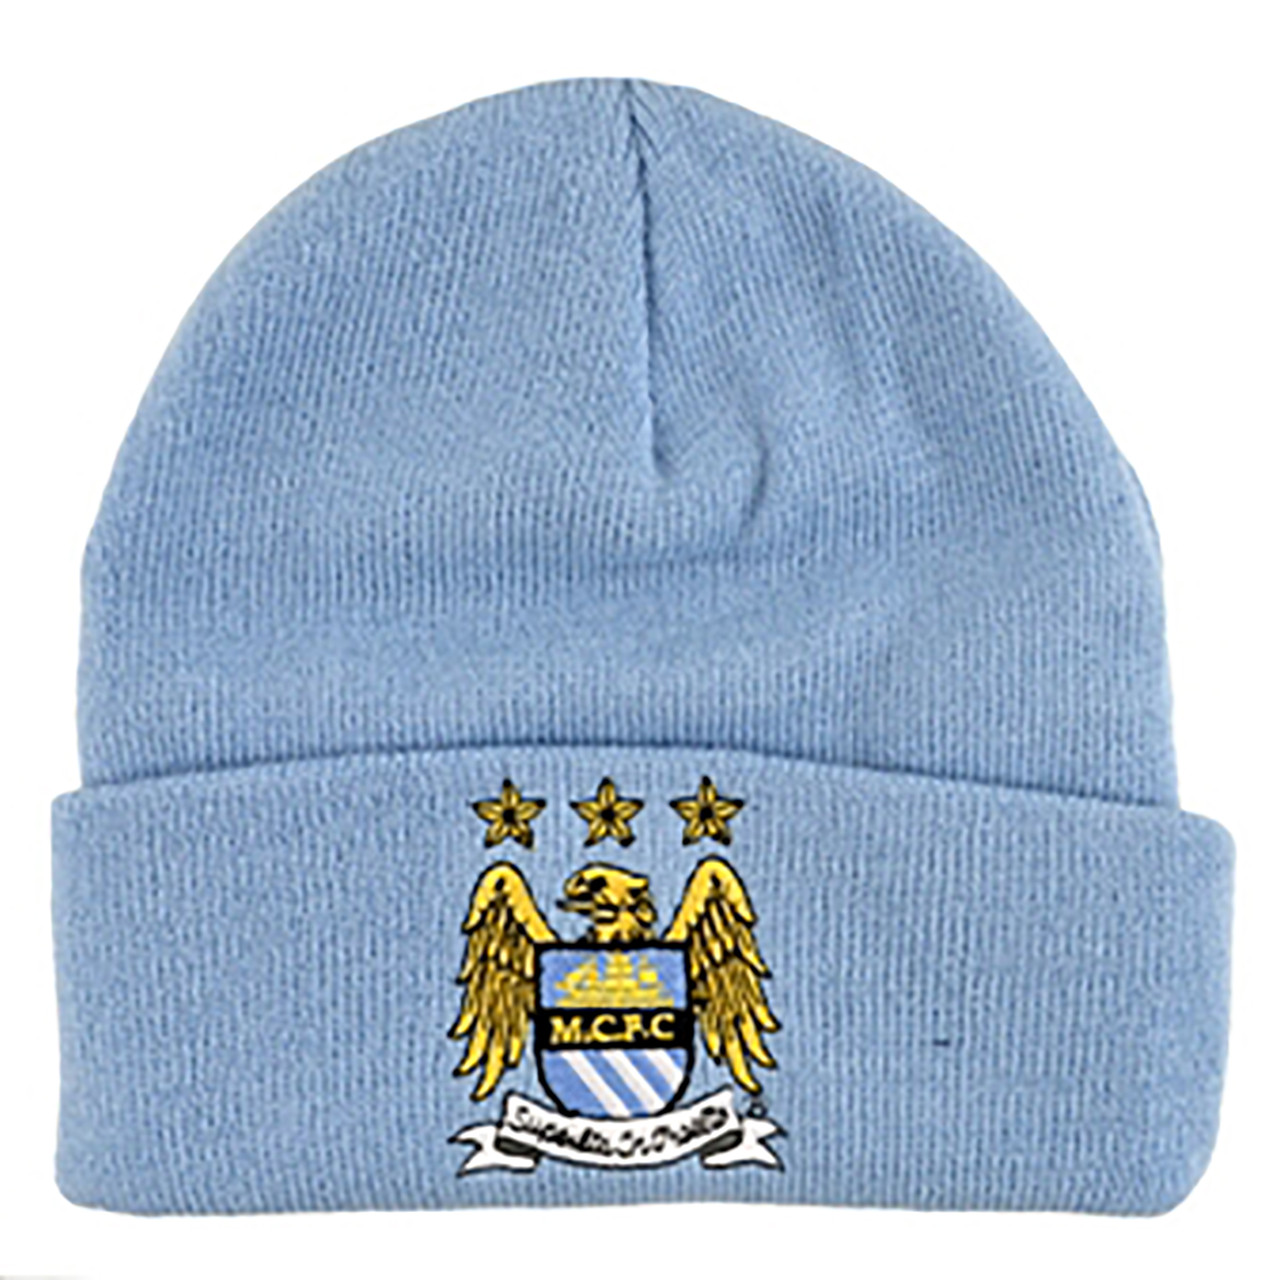 ccf631747c9 MANCHESTER CITY FC Official LIght Blue Cuffed Beanie Hat.  22.95. Image 1